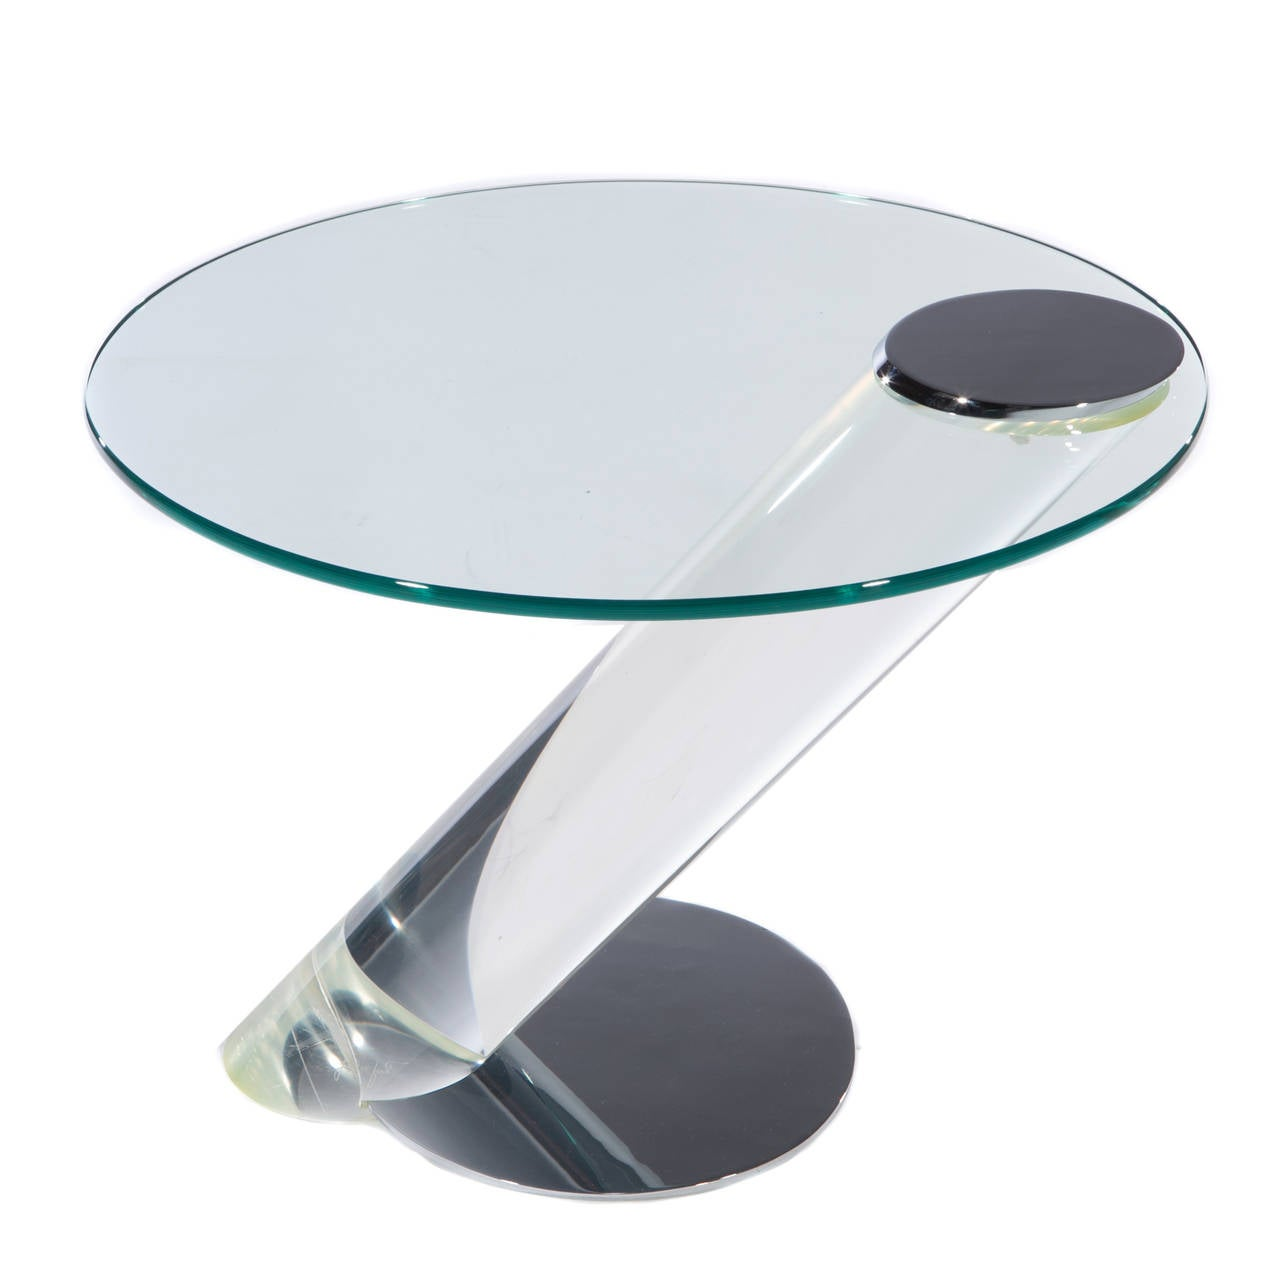 Pair Of Lucite, Chrome And Glass Side Tables By Lion In Frost 3